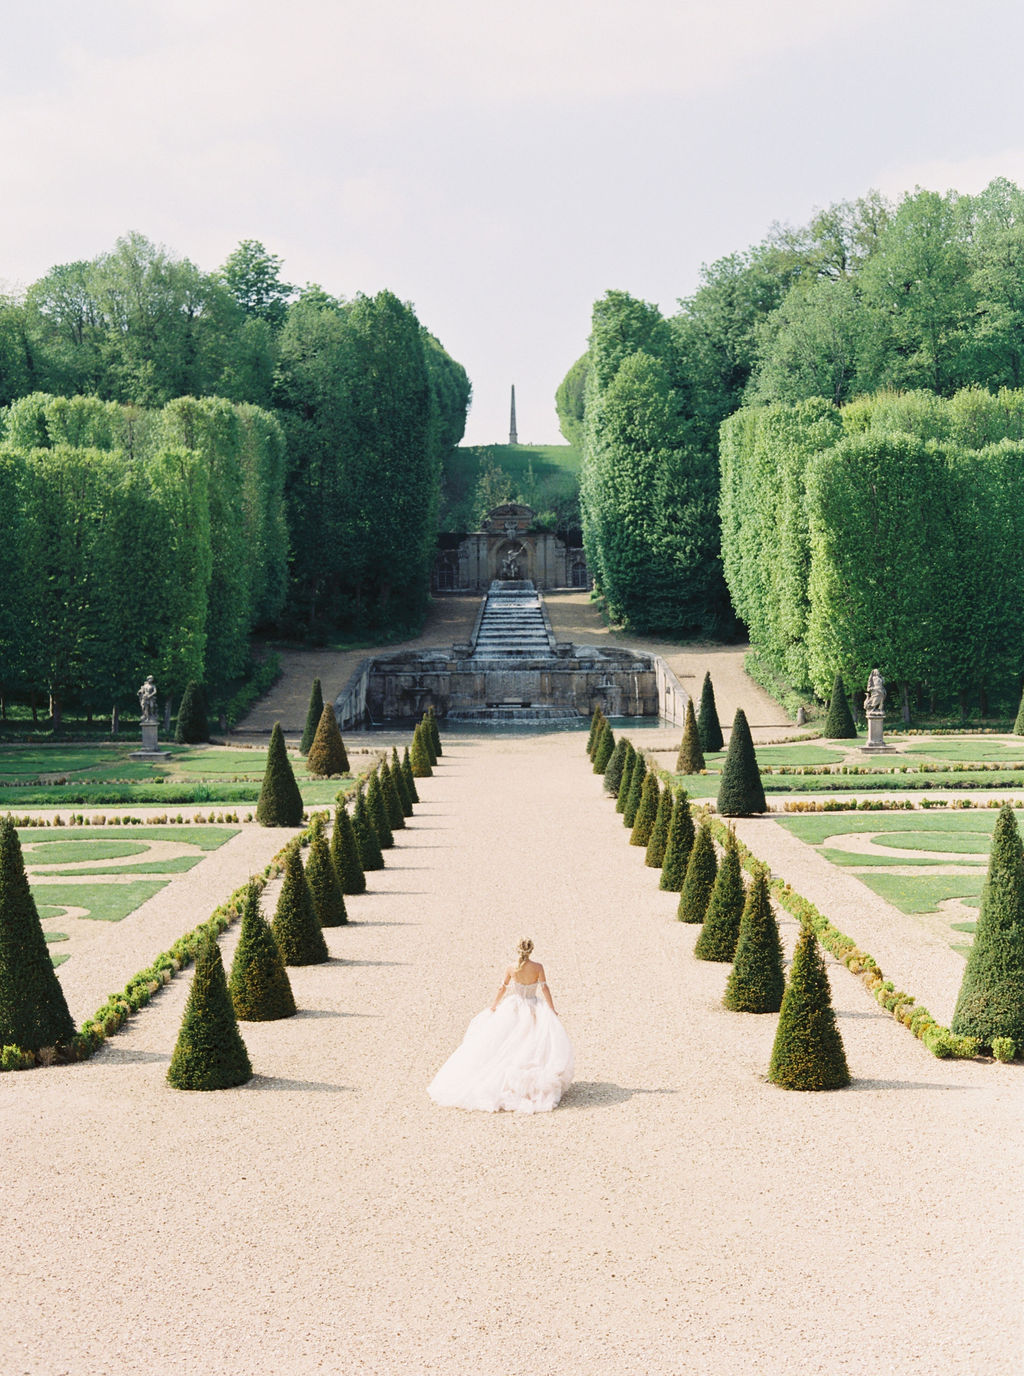 travellur_photoshoot_duchesse_de_villette_gardens_beauty_bride.jpg